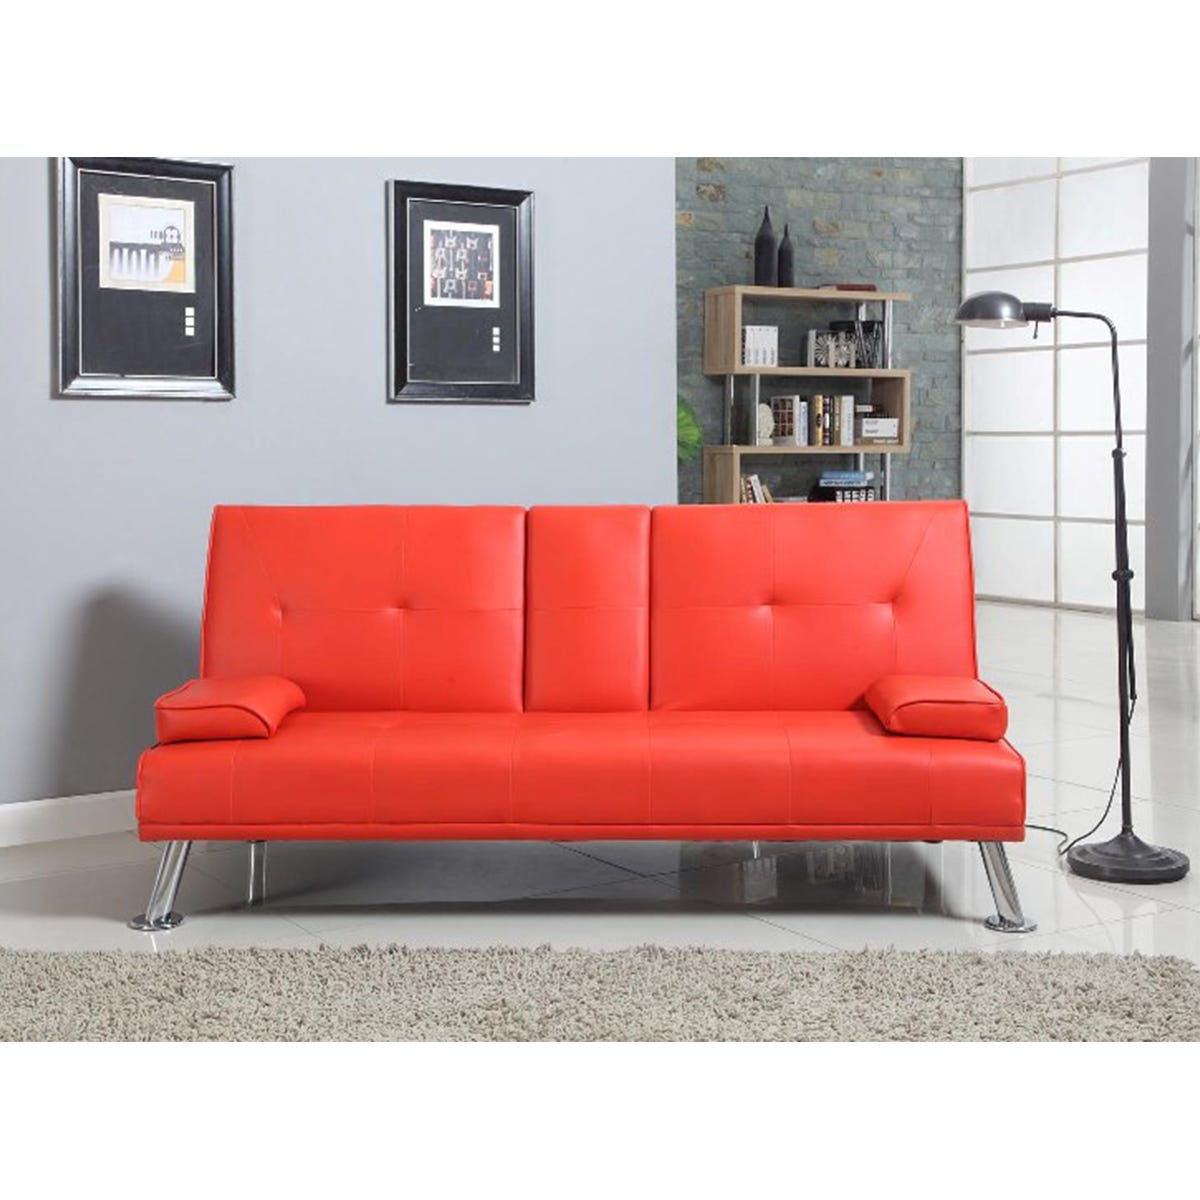 Noosa Bluetooth Sofa Bed - Red